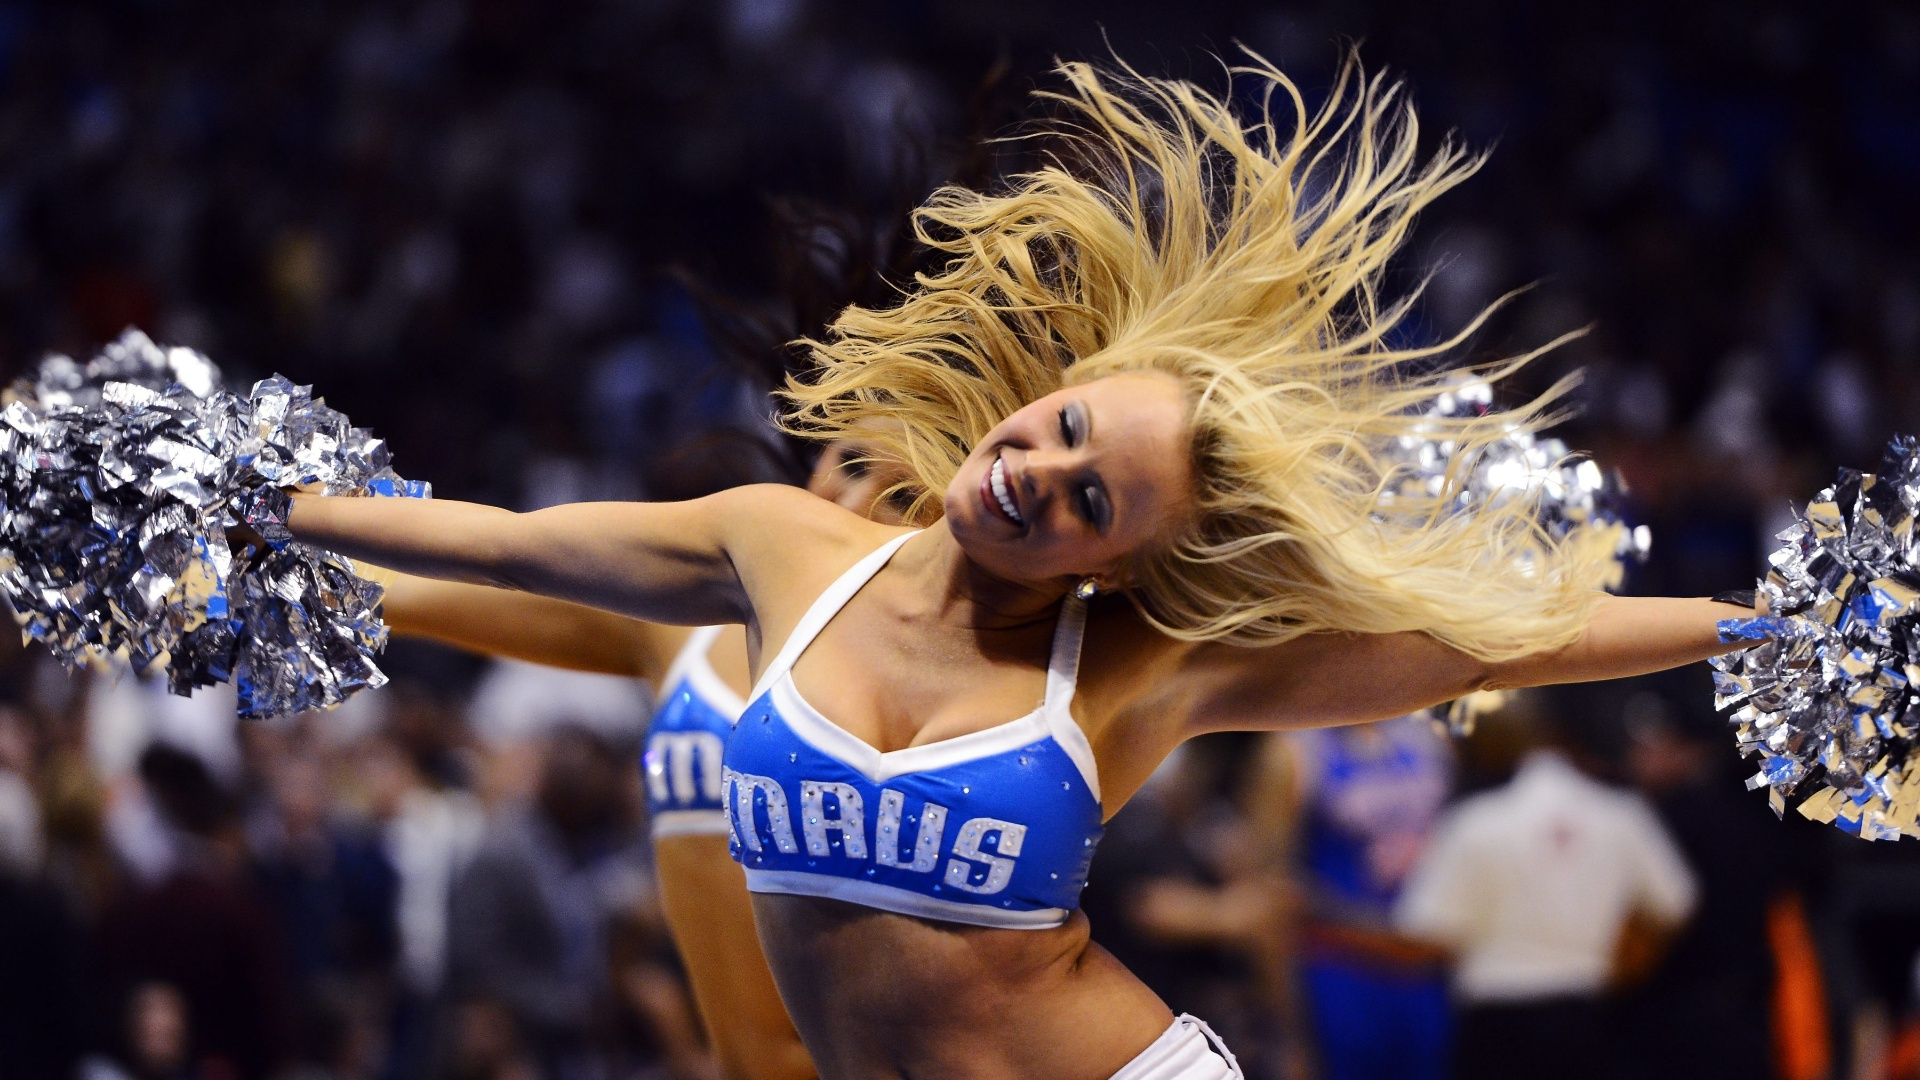 Cheerleader do Dallas Mavericks se apresenta no intervalo do jogo contra o New York Knicks, pela NBA